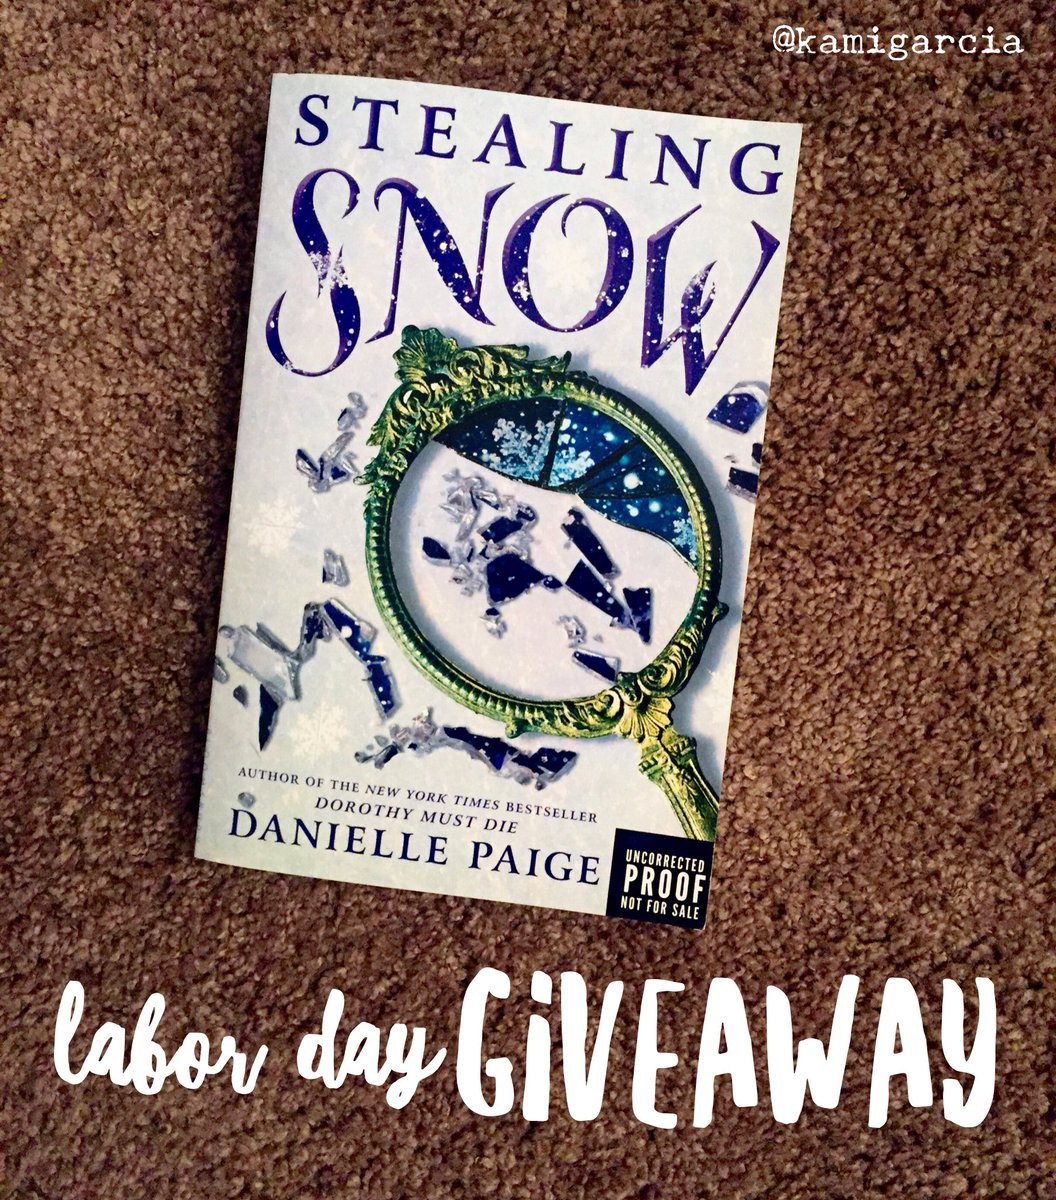 Labor Day #Giveaway! Follow + RT to enter to win #StealingSnow by @daniellempaige - a book I blurbed! https://t.co/gb1YKZwezw